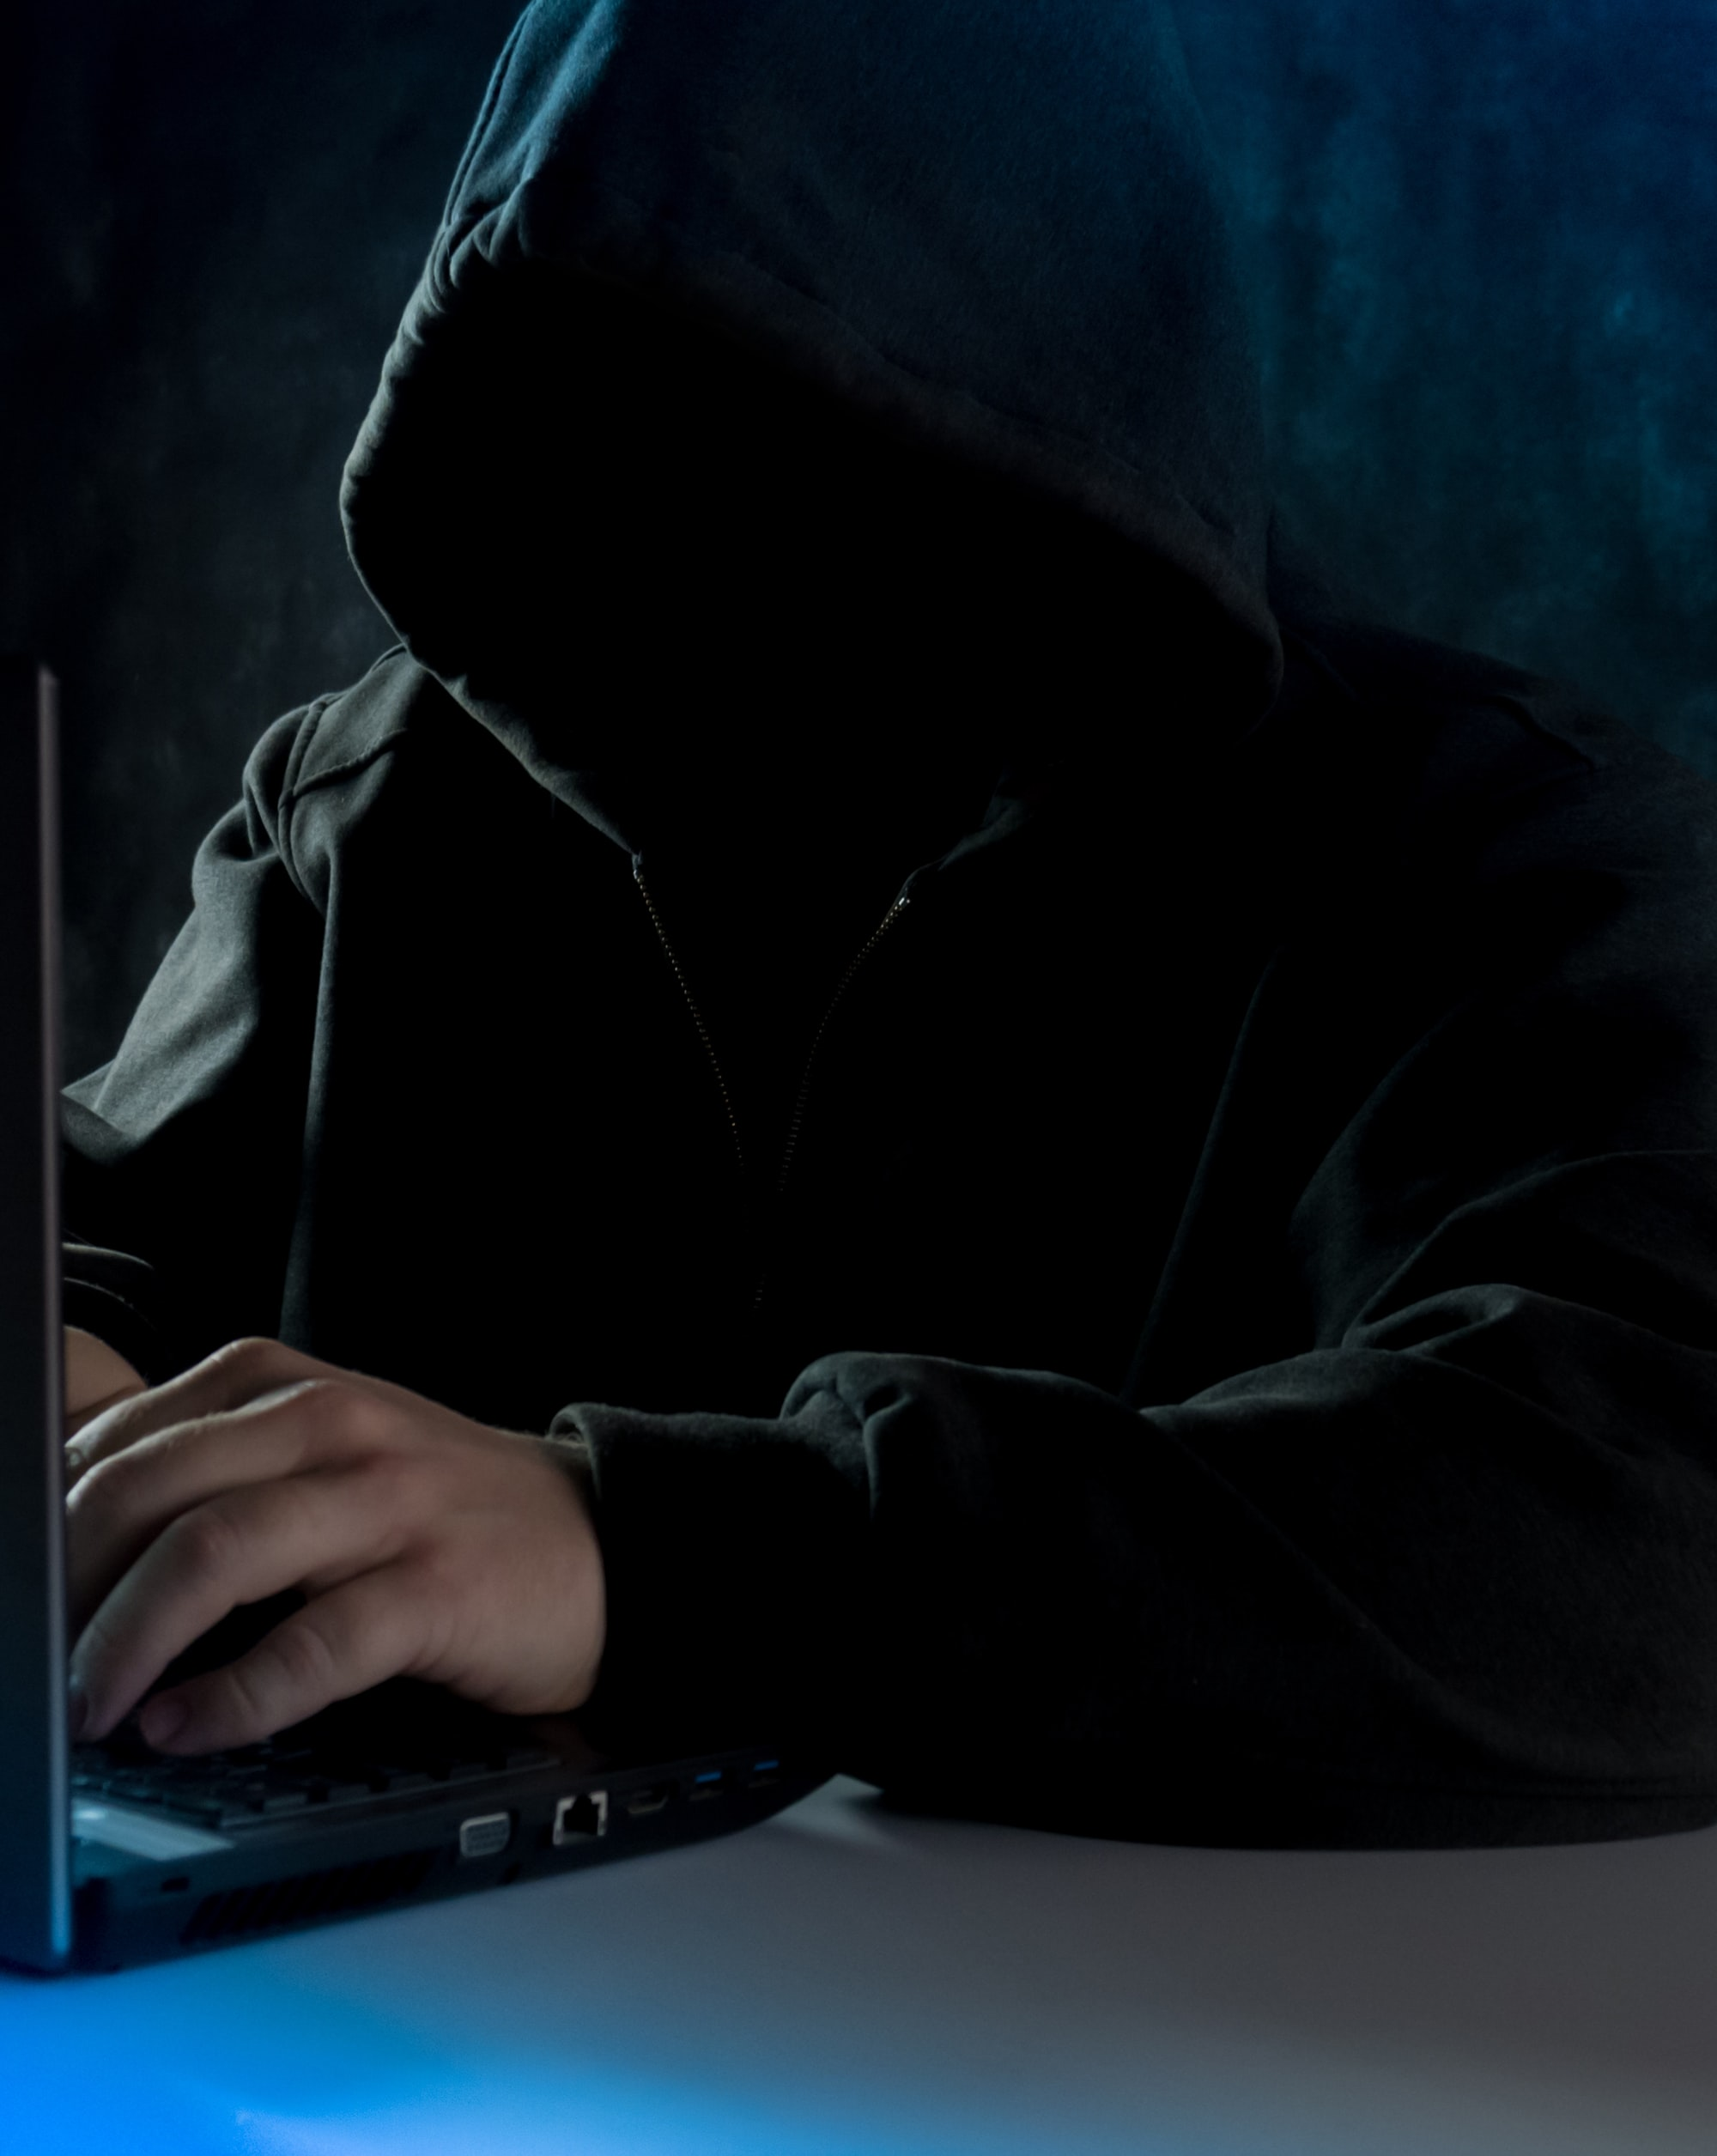 Cybercrime and data security concerns are always evolving